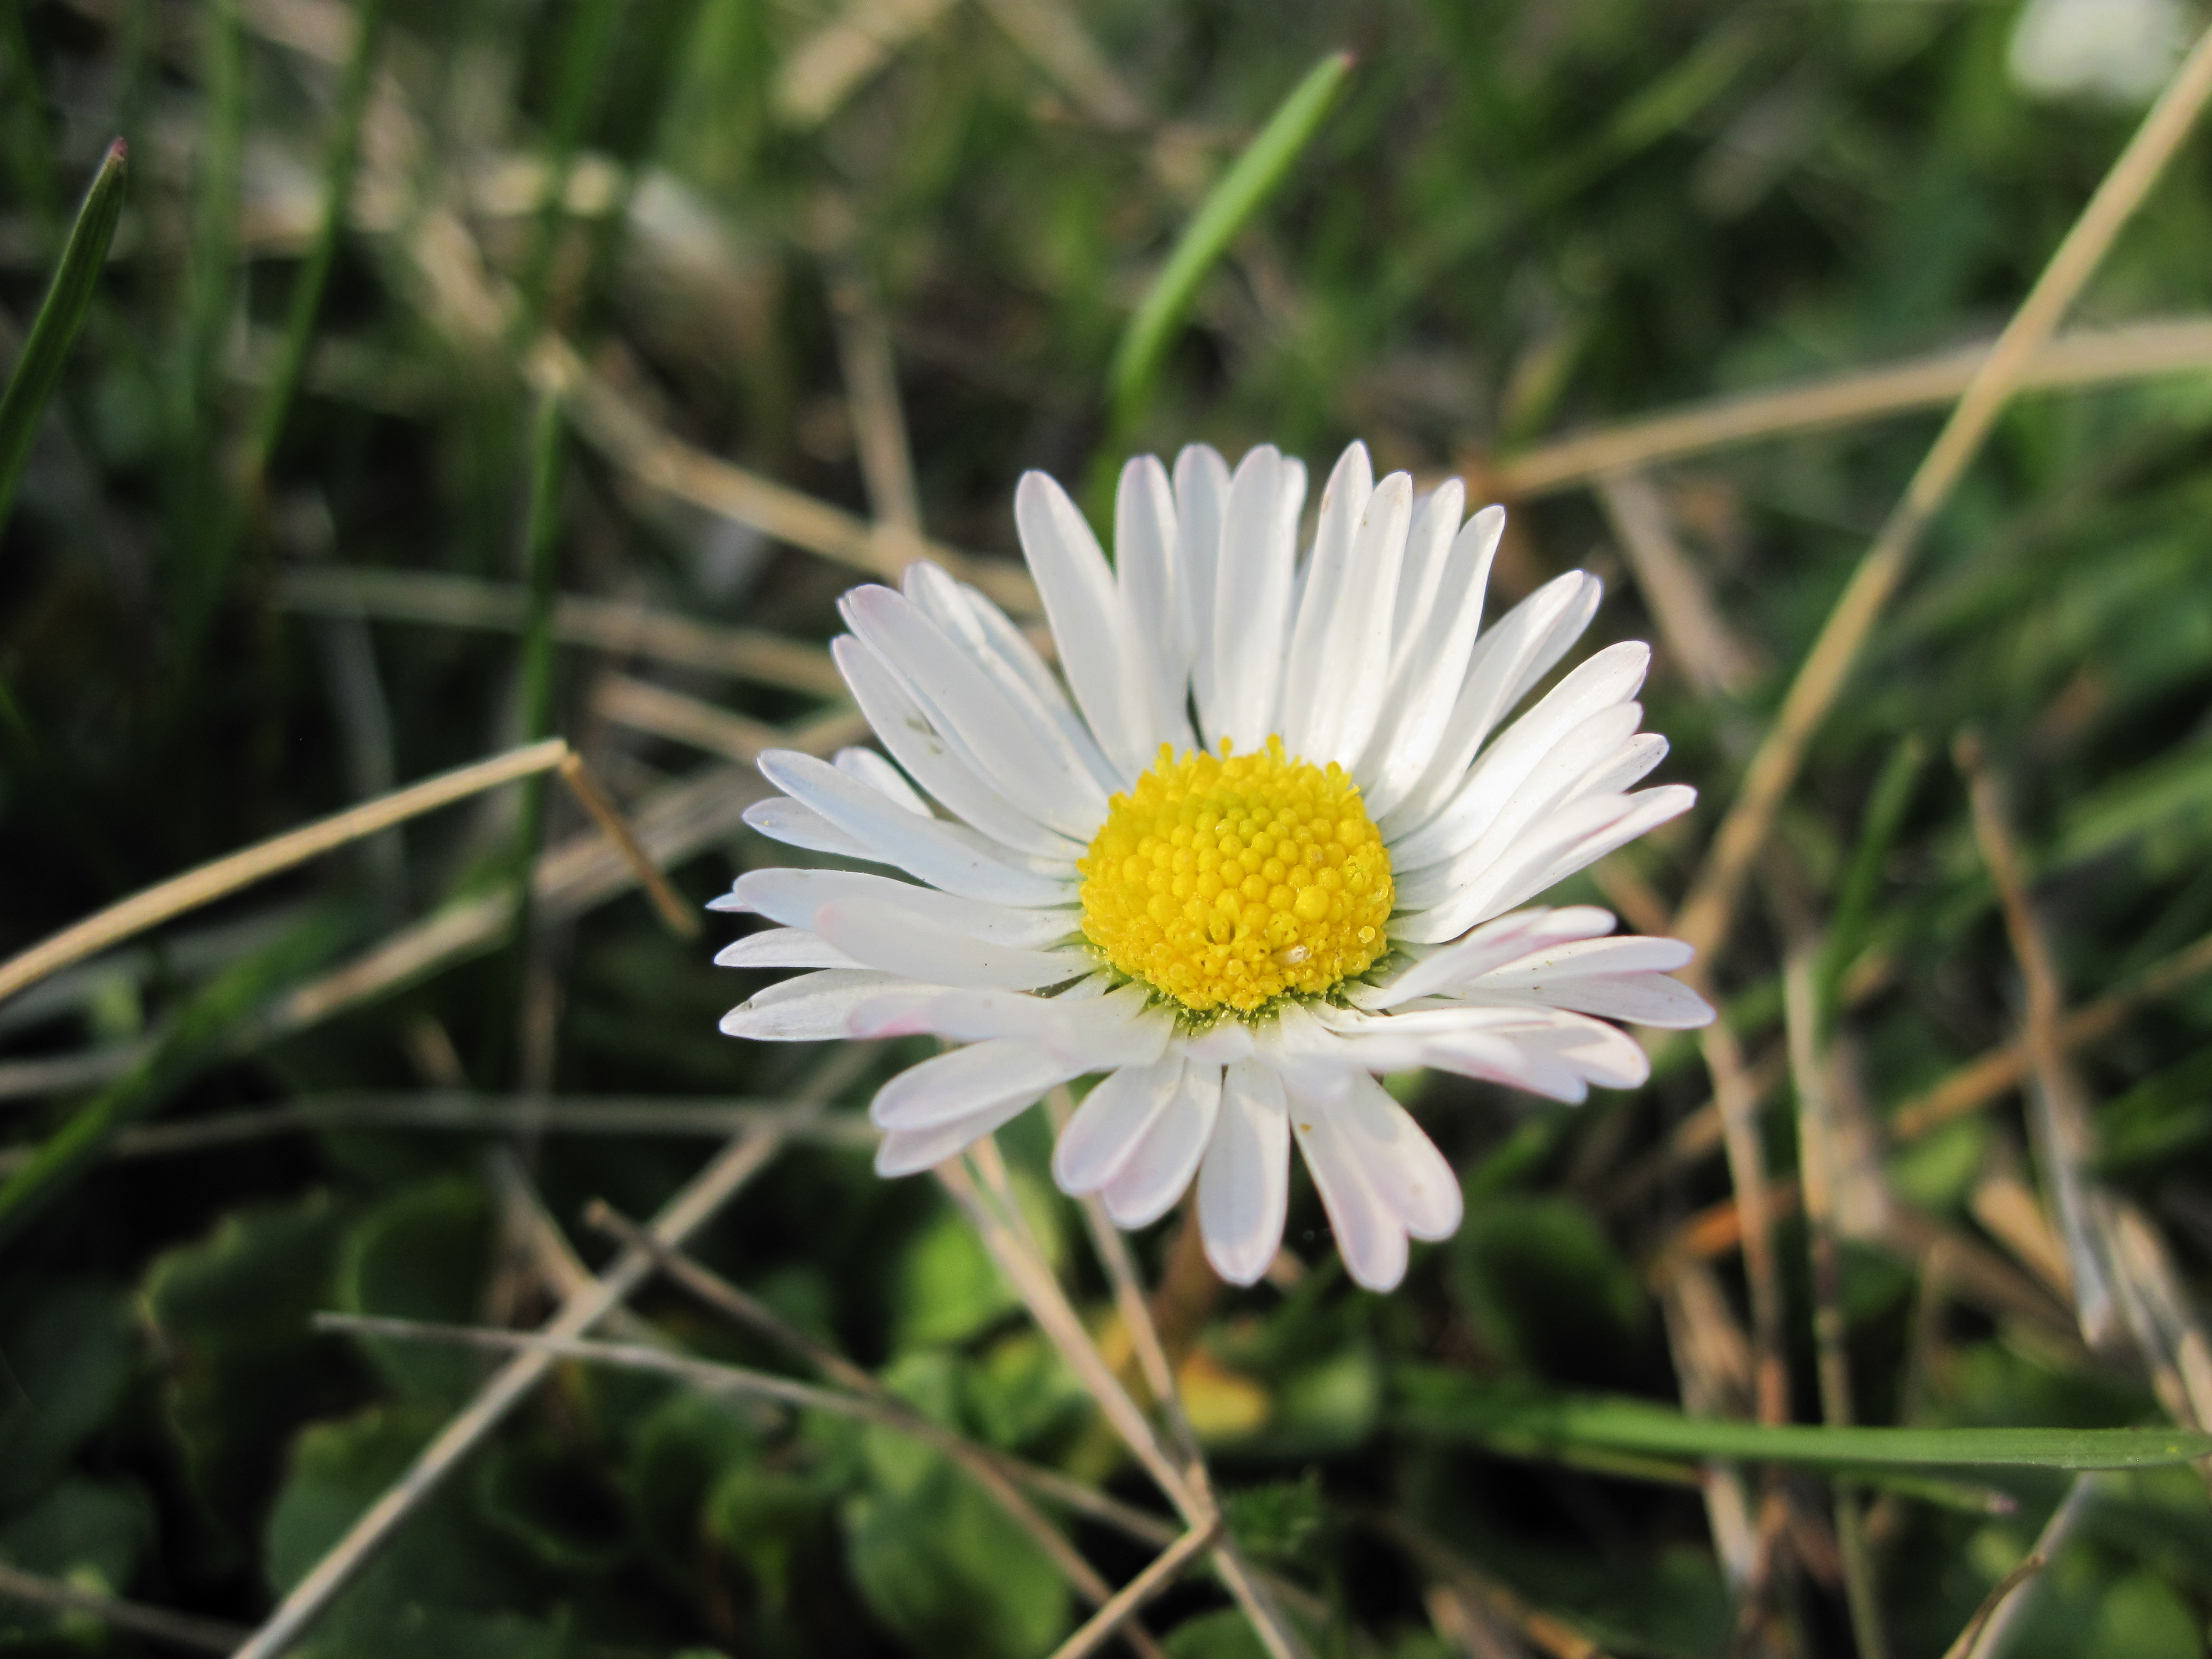 Daisy flower, White, Plants, Wild, Yellow, HQ Photo